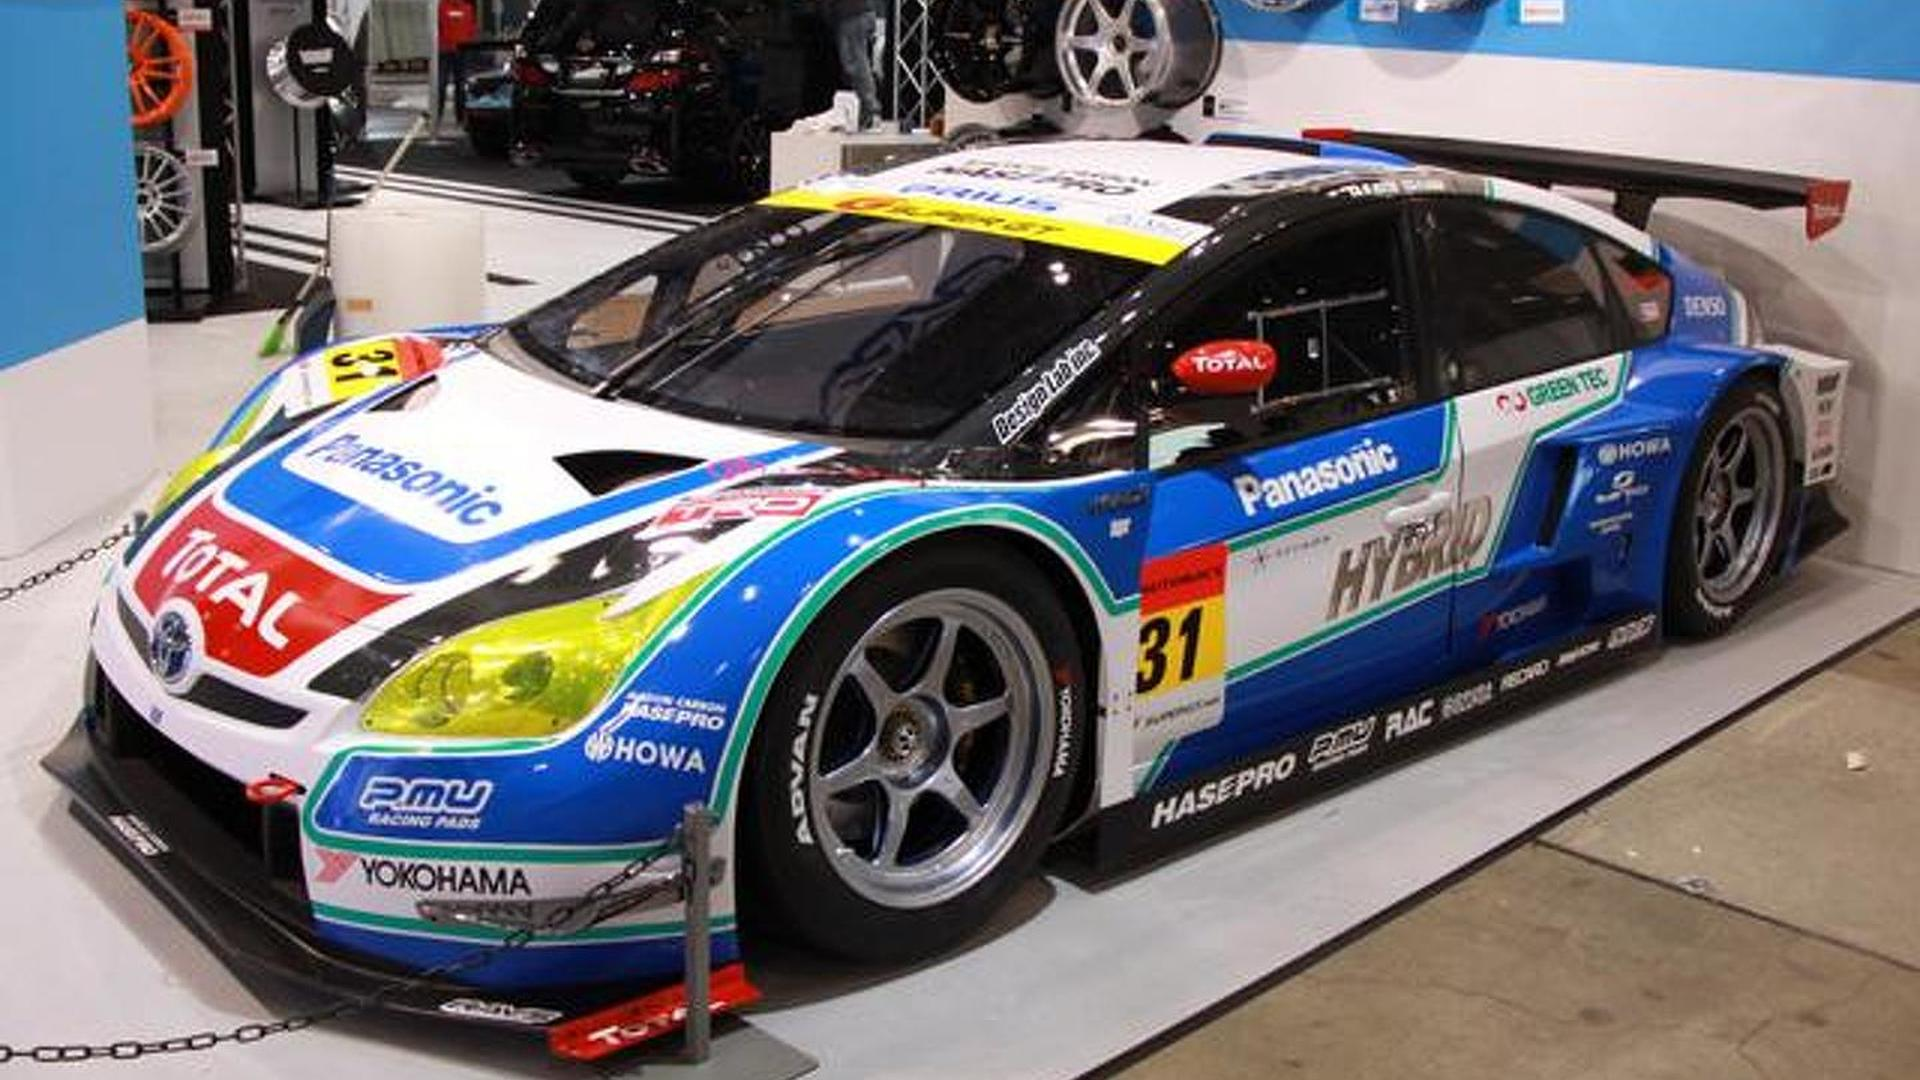 Toyota Race Cars >> Toyota Prius Gt300 Race Car Gets Real